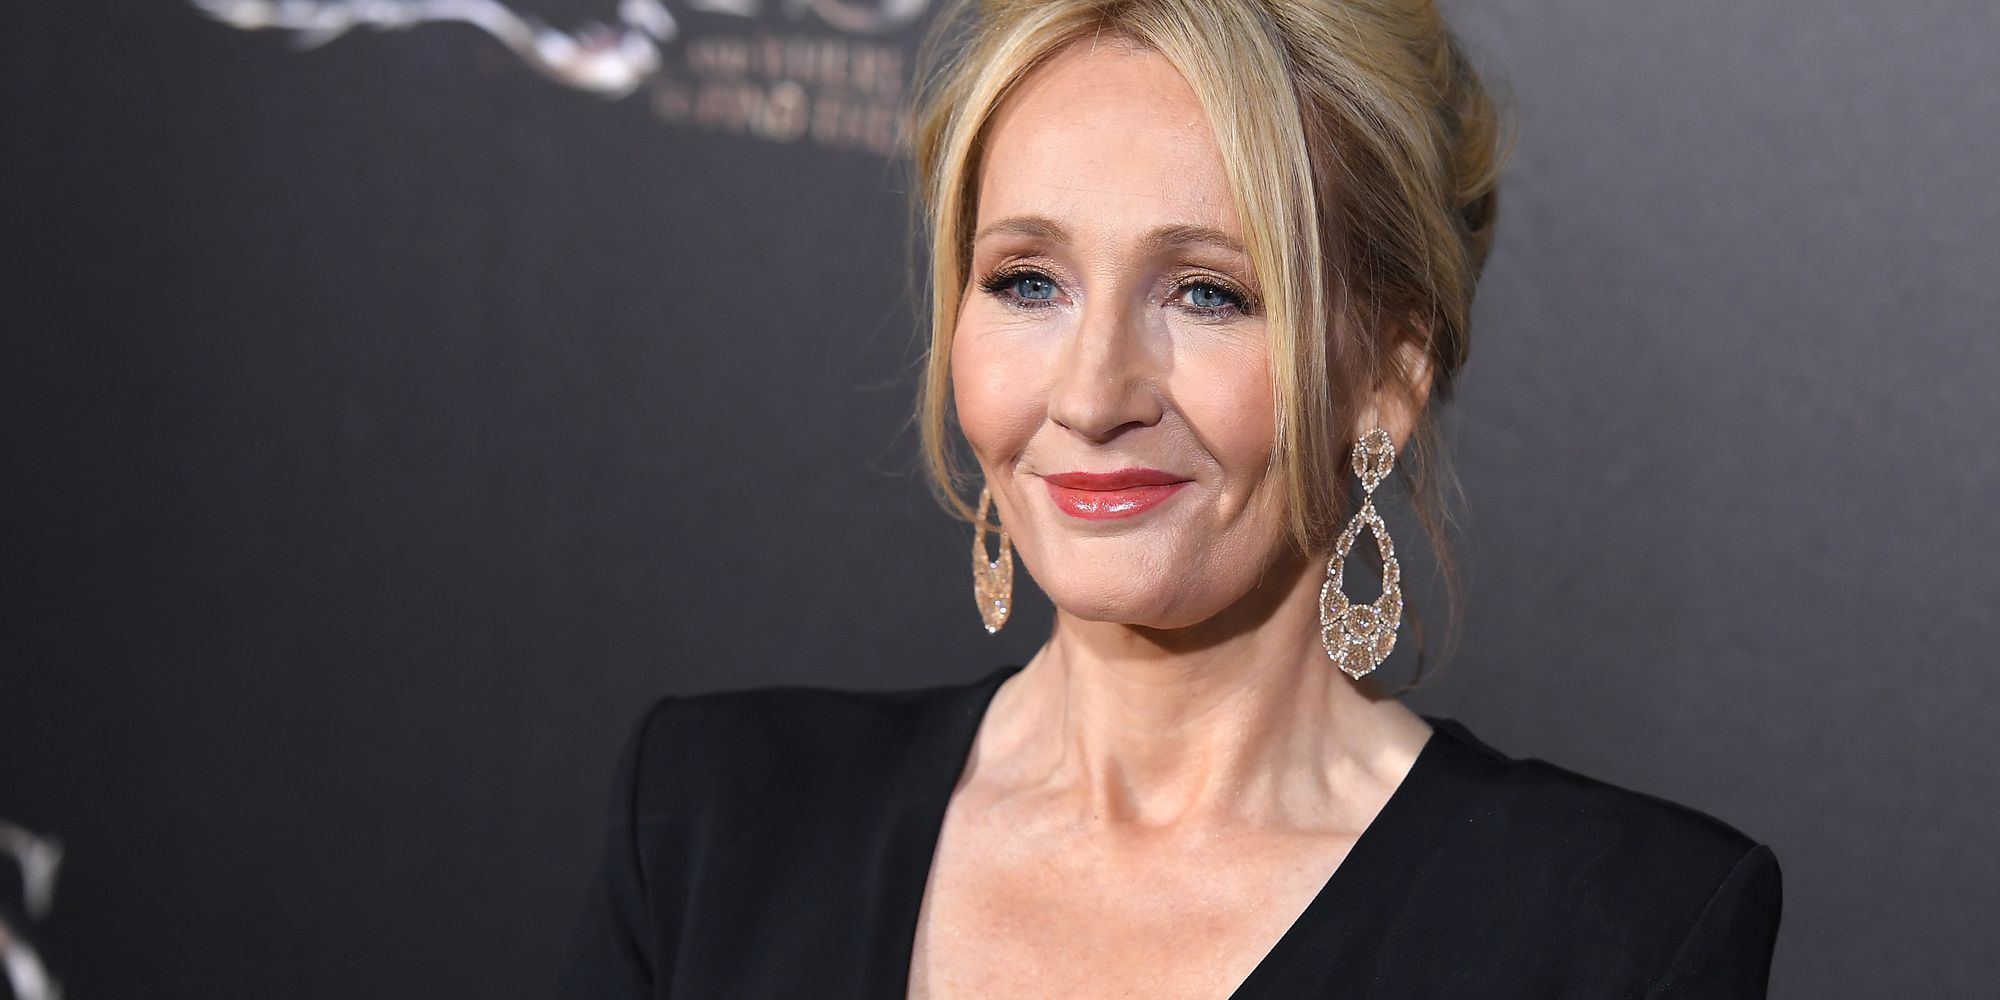 J.K. Rowling Went After Trump And His Tiny, Dangerous Fingers